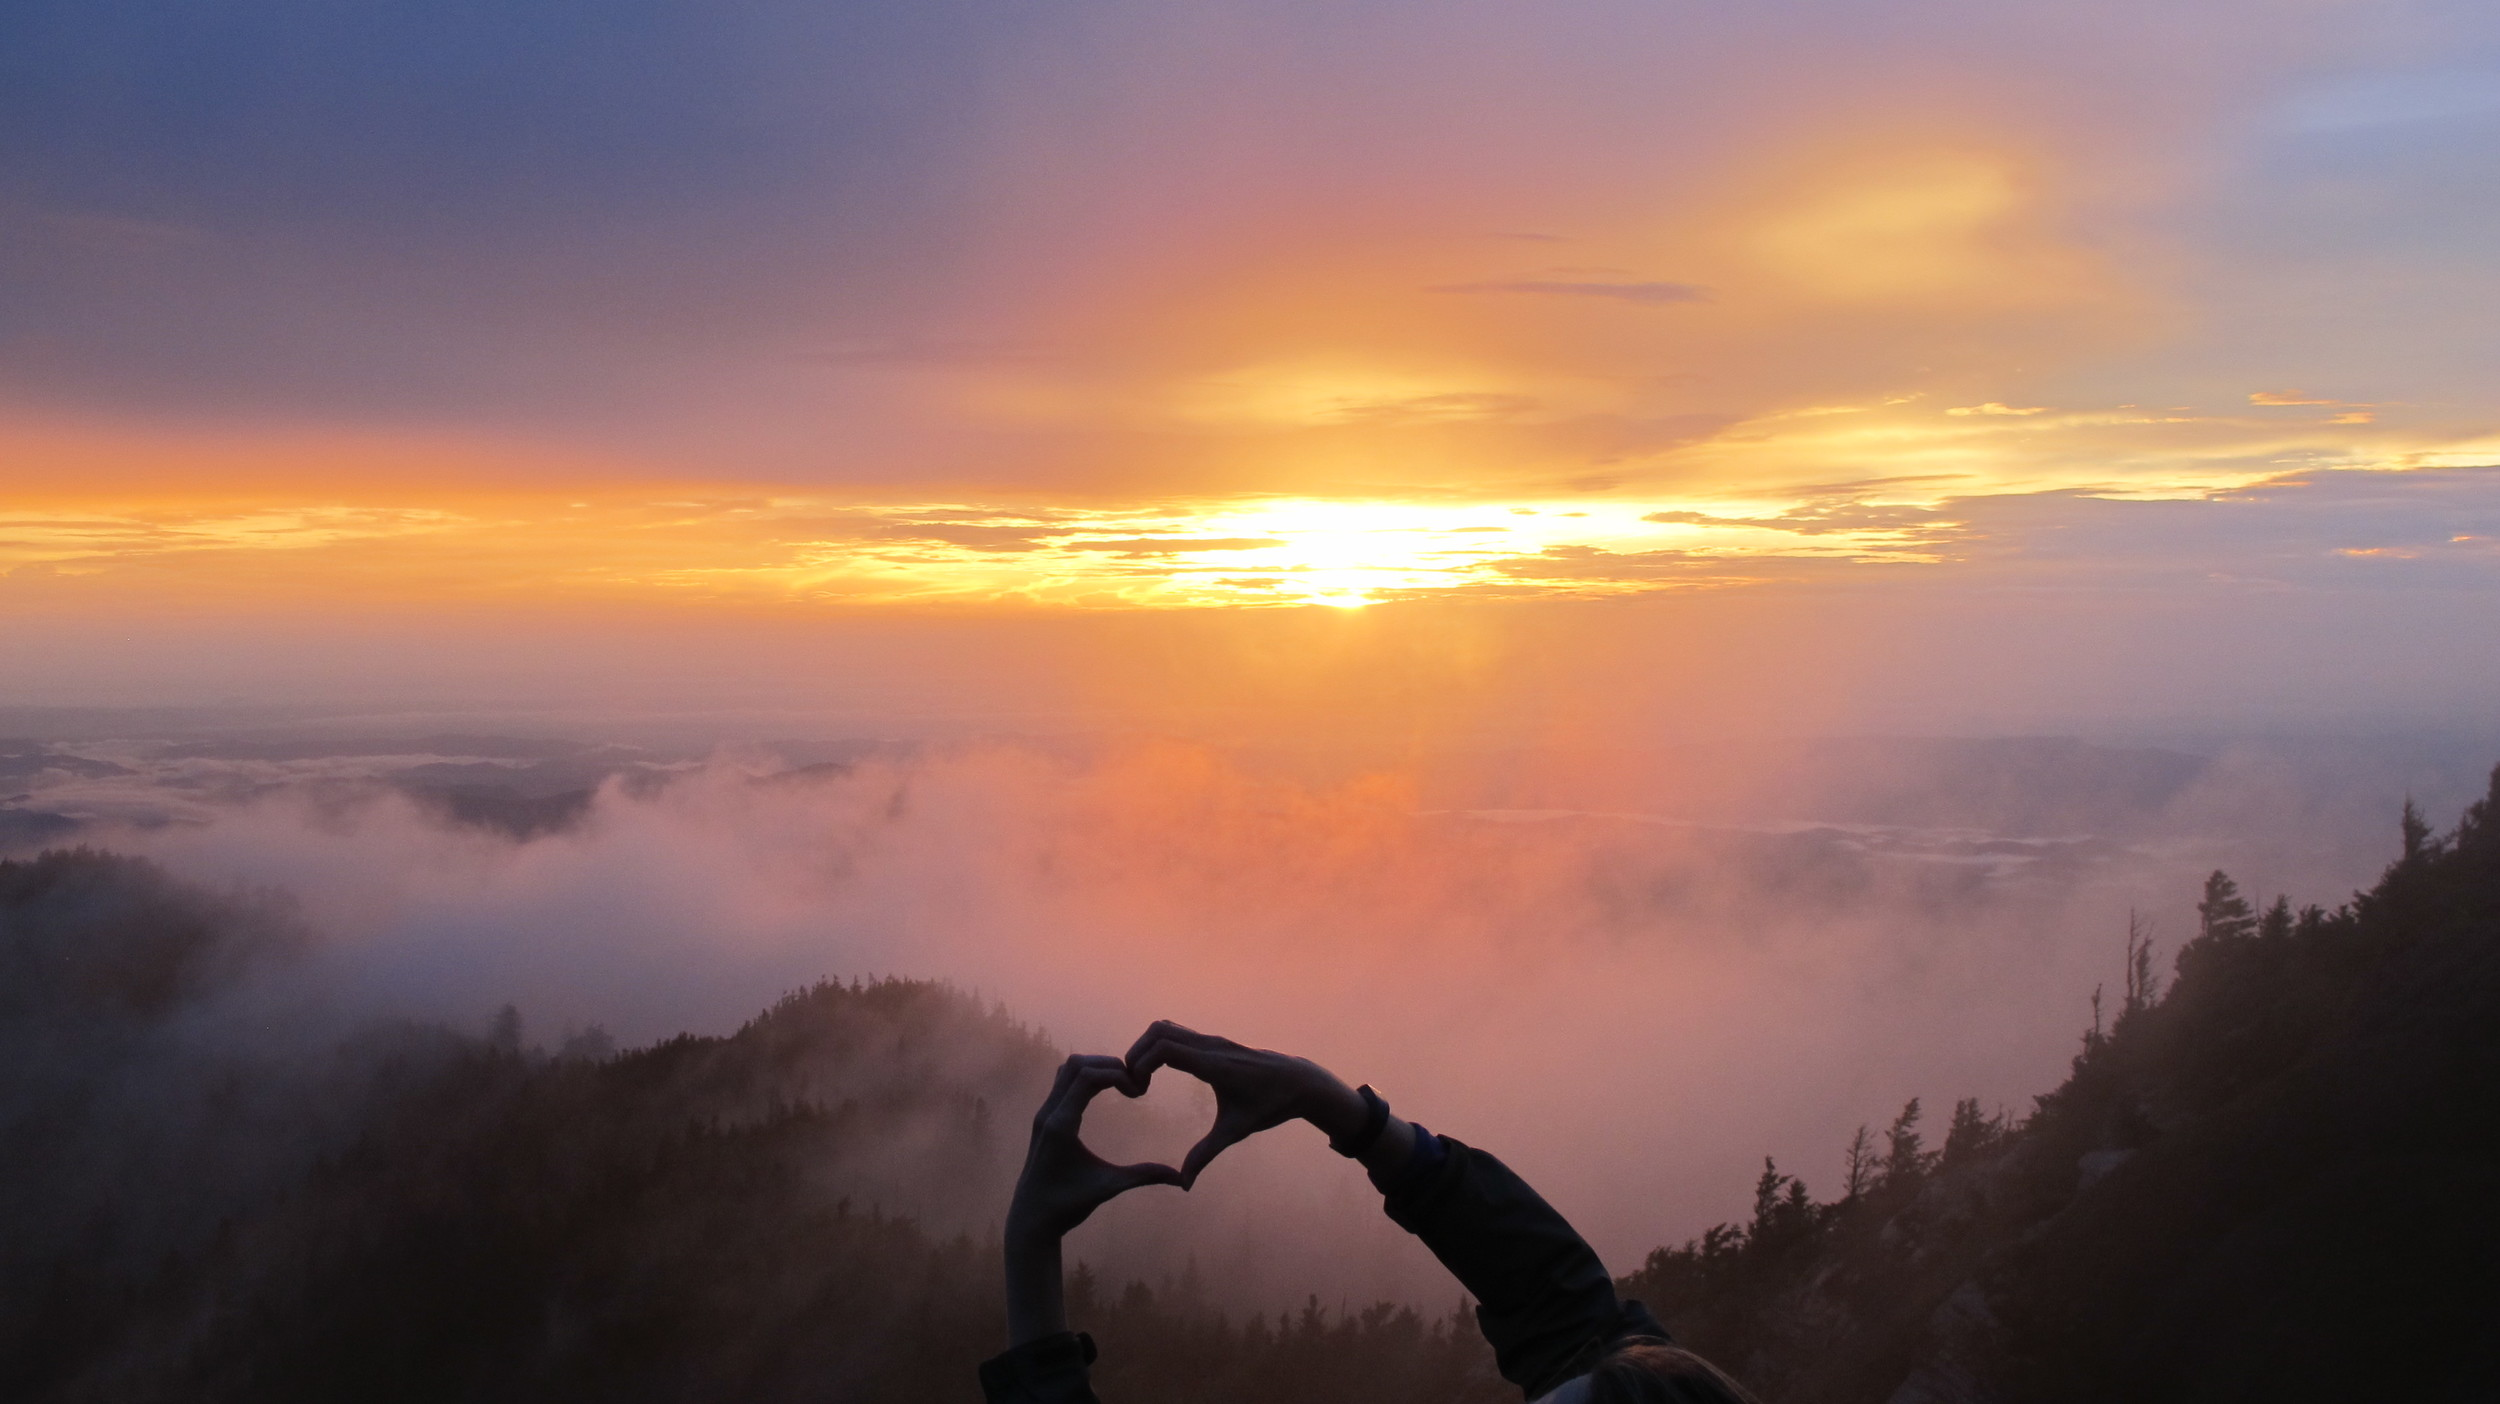 Sunset at Clifftops, Mt. LeConte, Tennessee